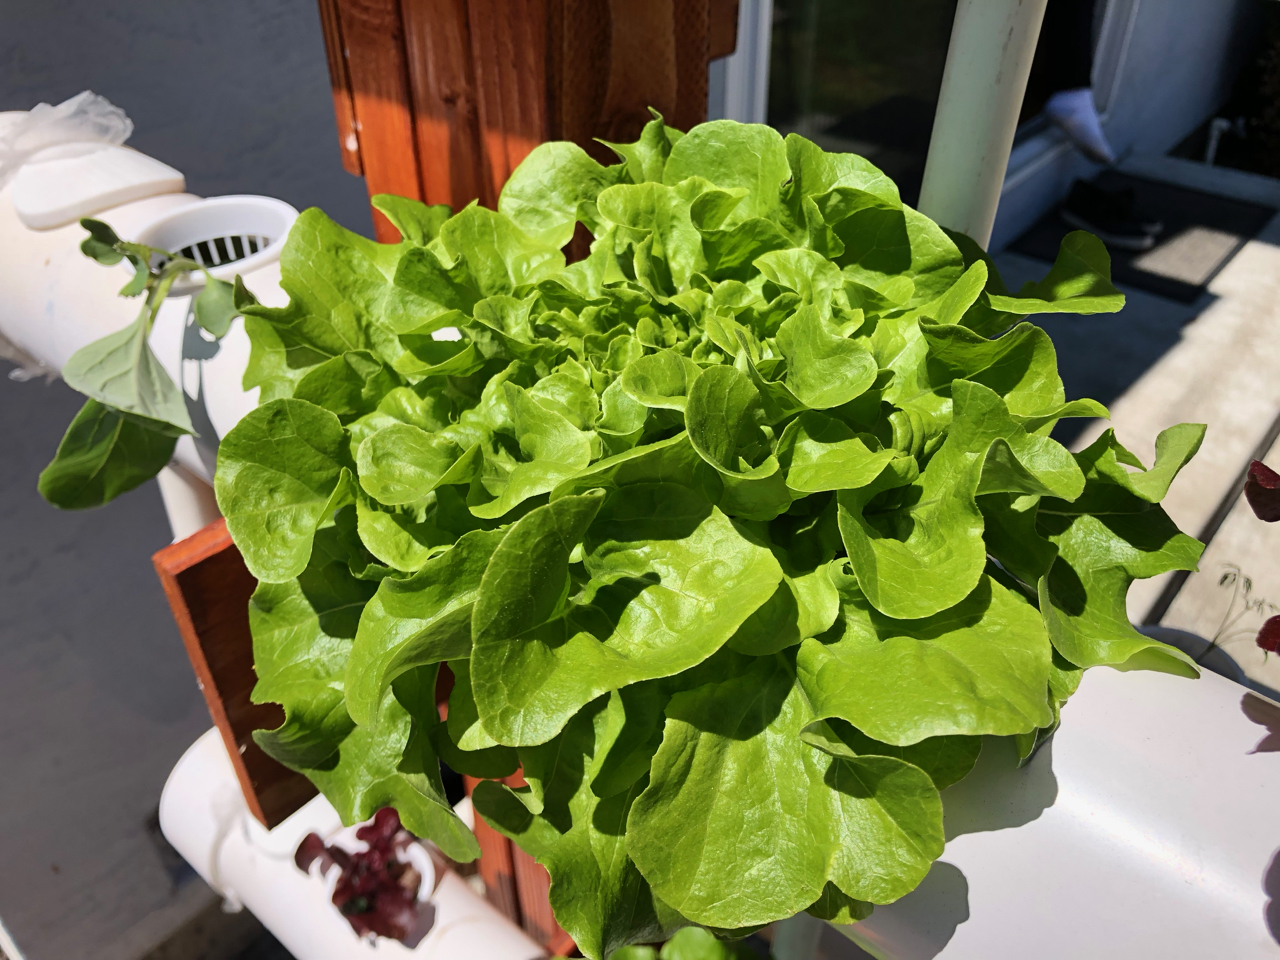 static/systems/vert-rdwc-1/images-front/lettuce-growing.jpg